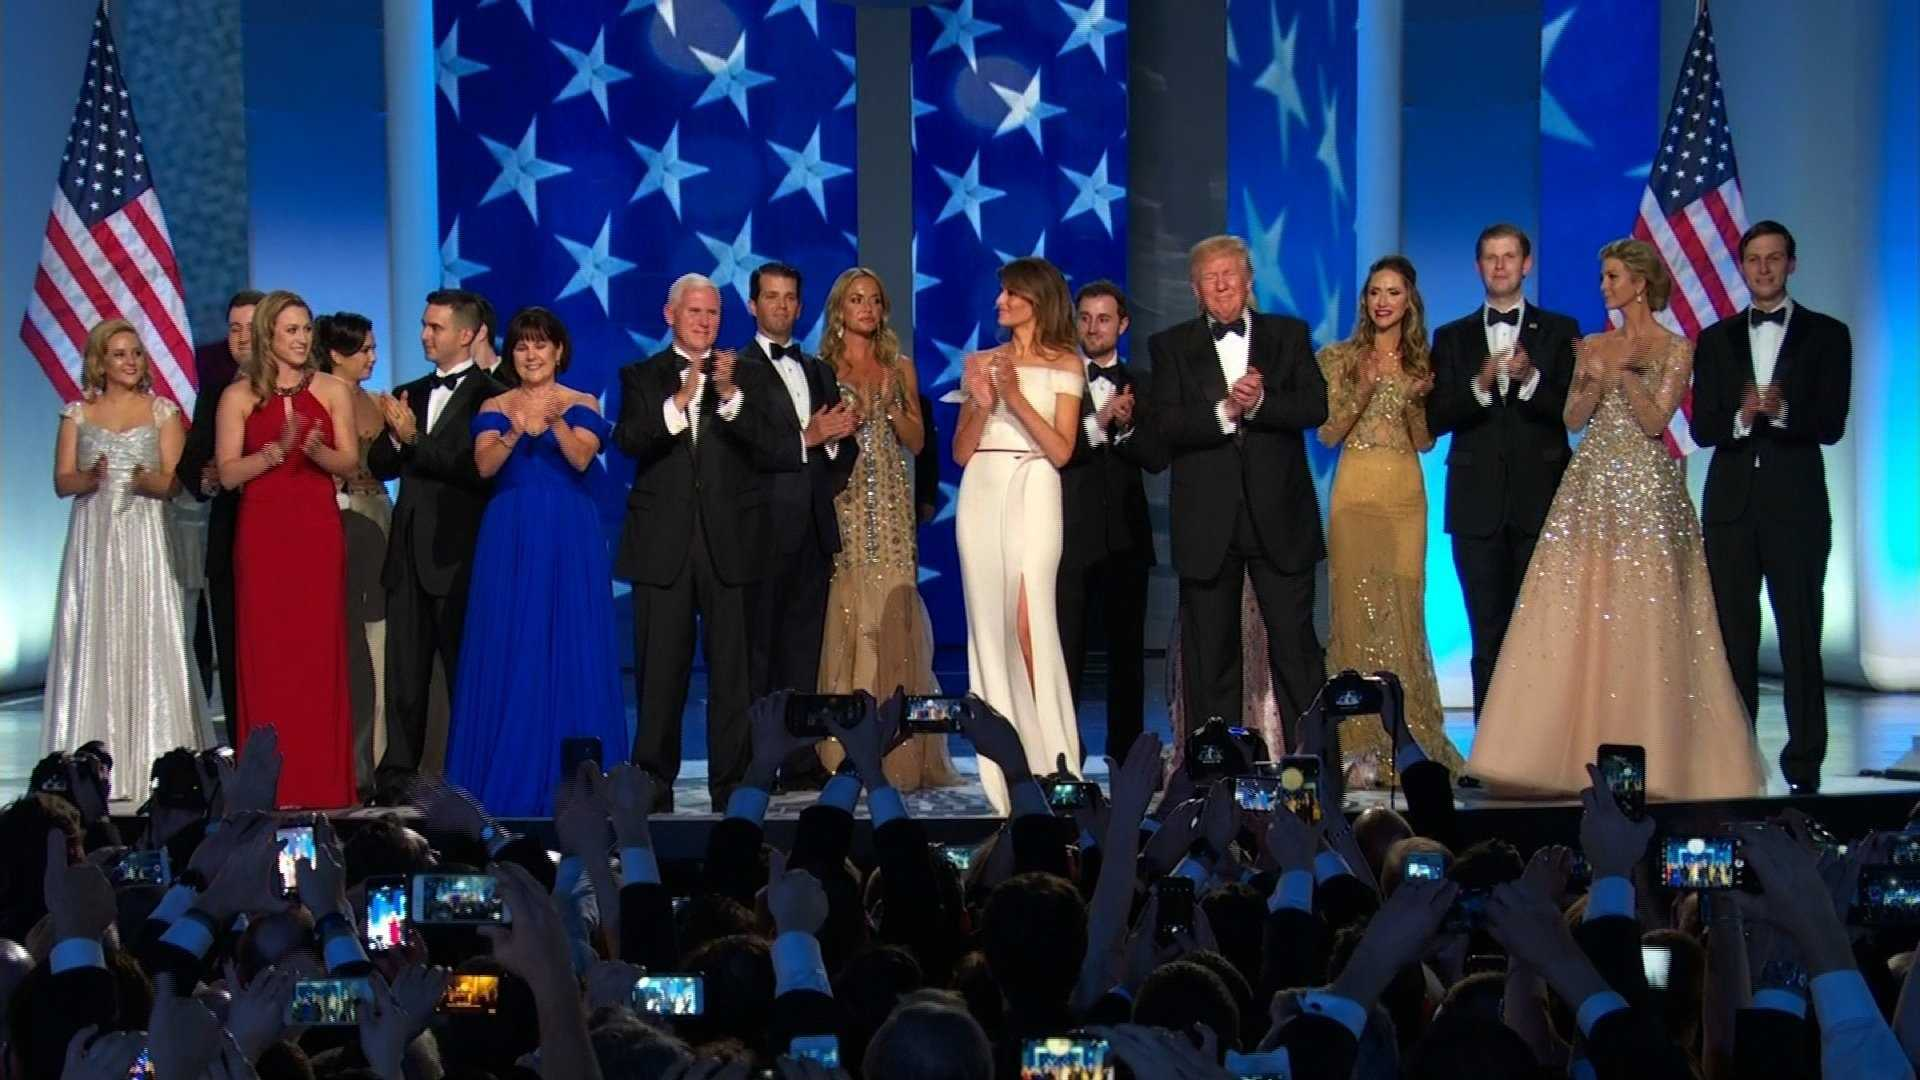 President Donald Trump on stage with his family and Vice President Mike Pence at the inaugural ball on January 20, 2017